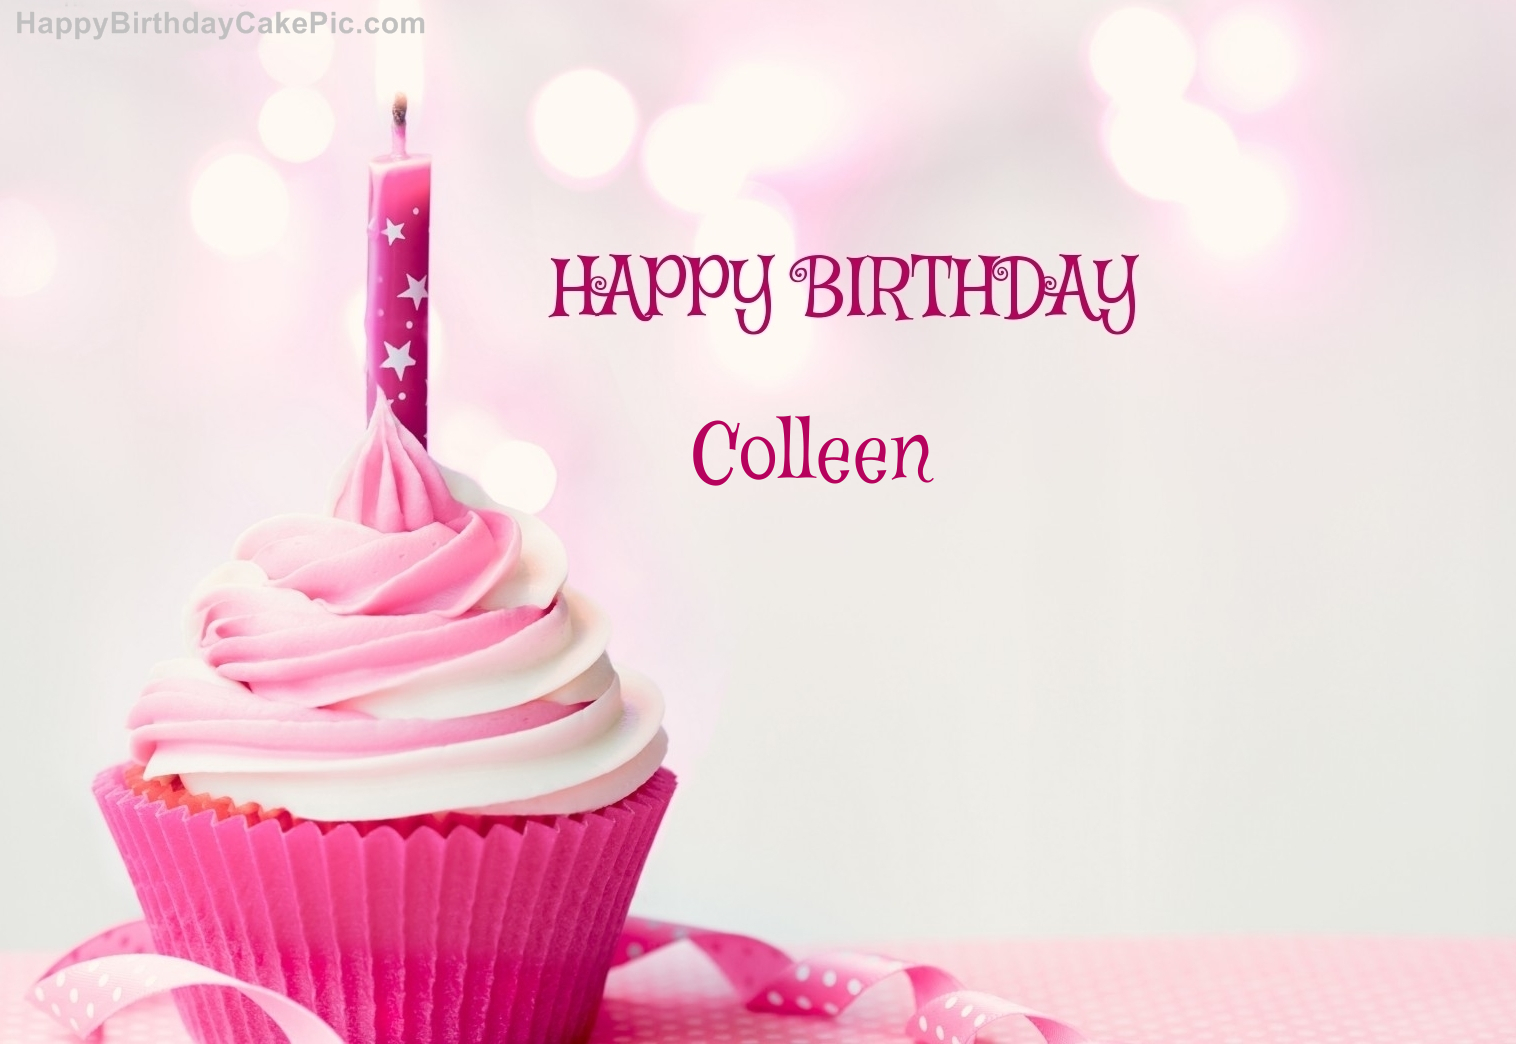 Happy Birthday Cupcake Candle Pink Cake For Colleen